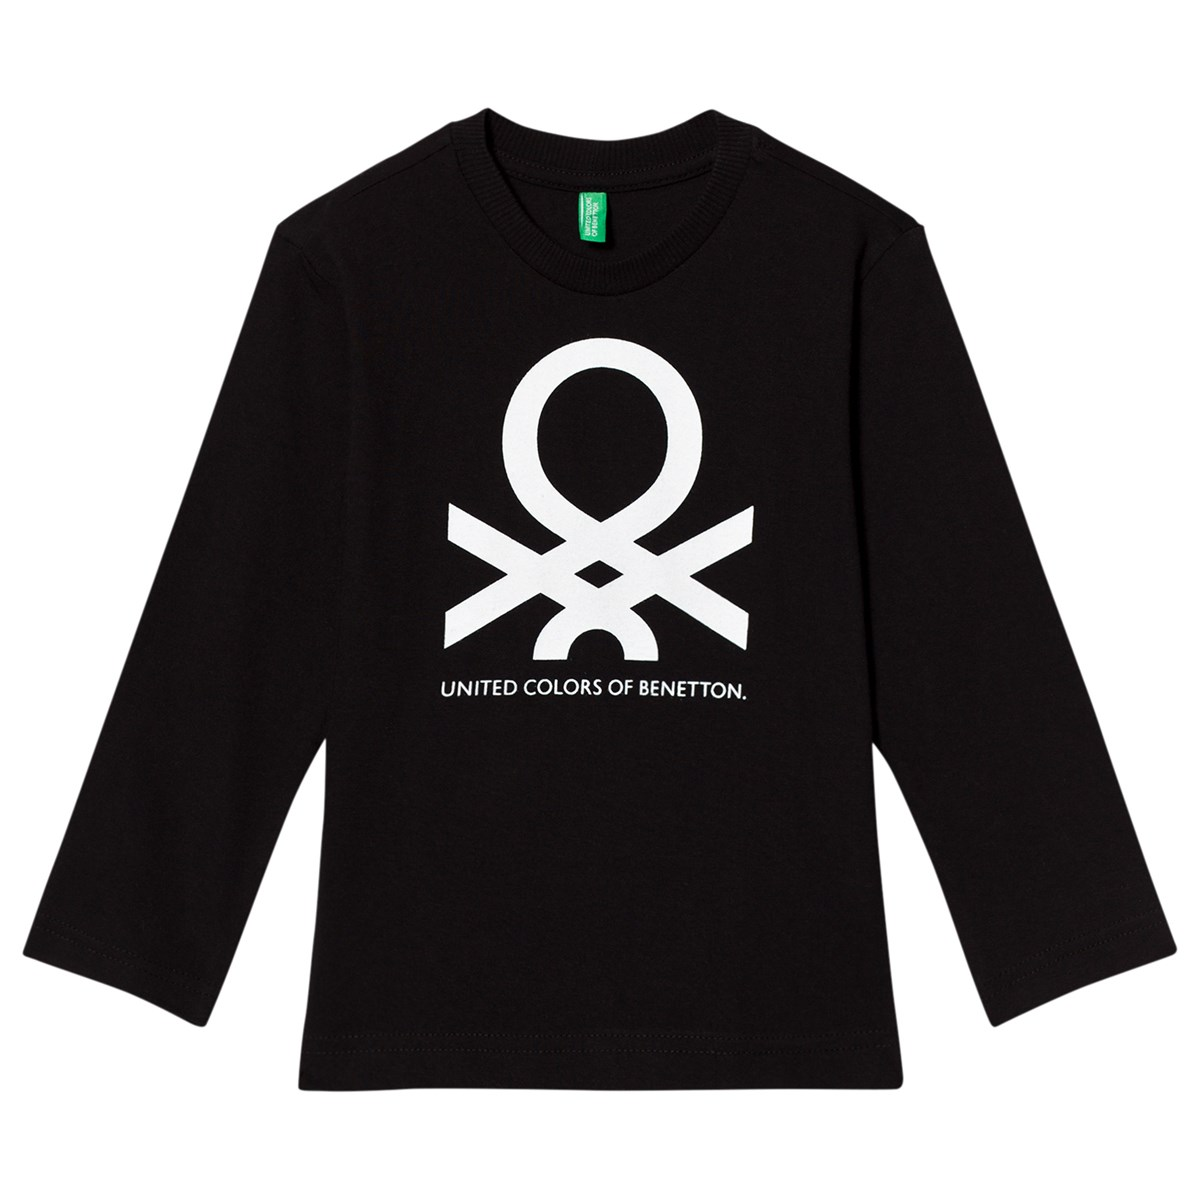 United colors of benetton long sleeve logo t shirt black for United colors of benetton online shop outlet